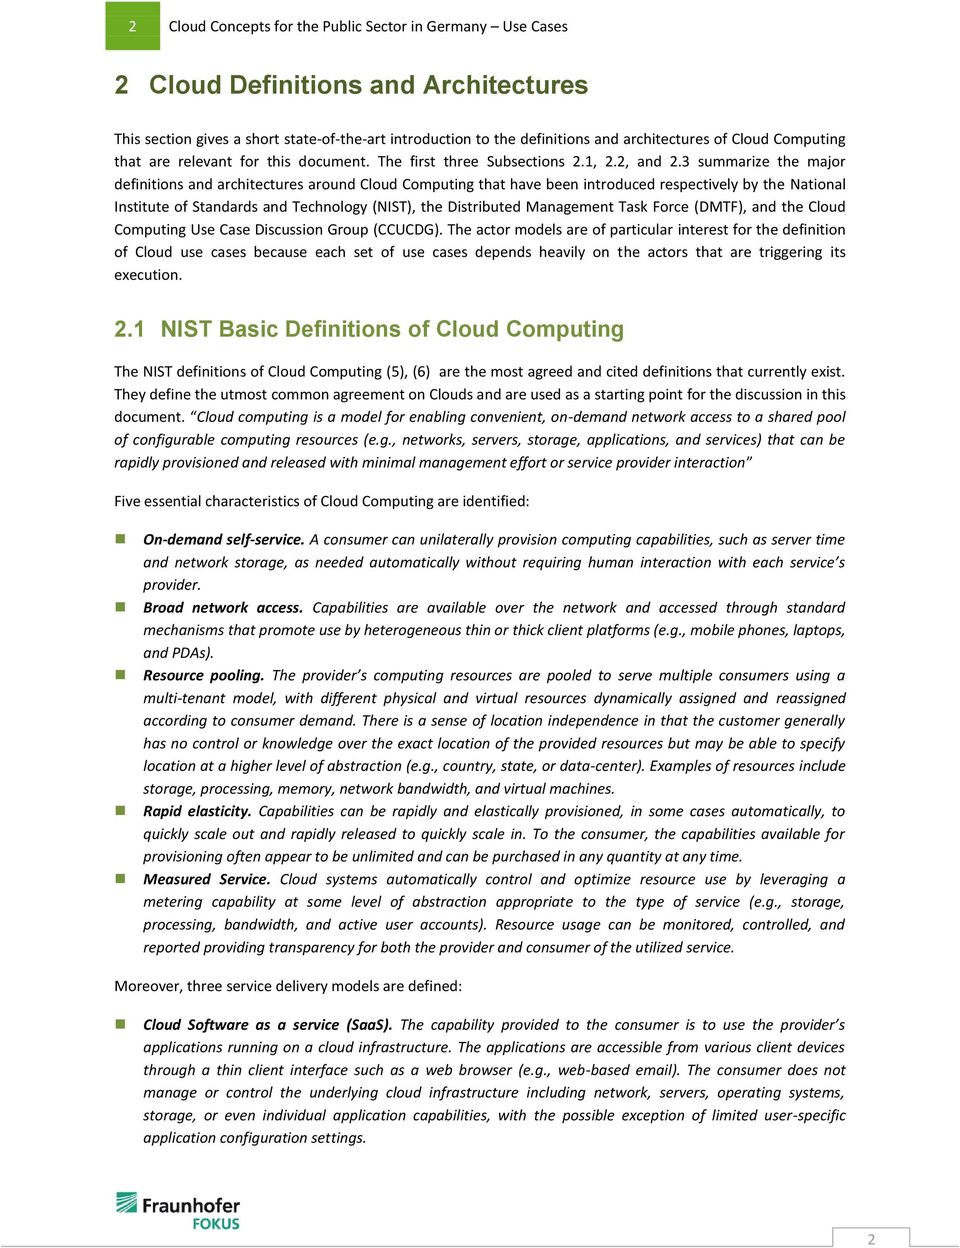 3 summarize the major definitions and architectures around Cloud Computing that have been introduced respectively by the National Institute of Standards and Technology (NIST), the Distributed